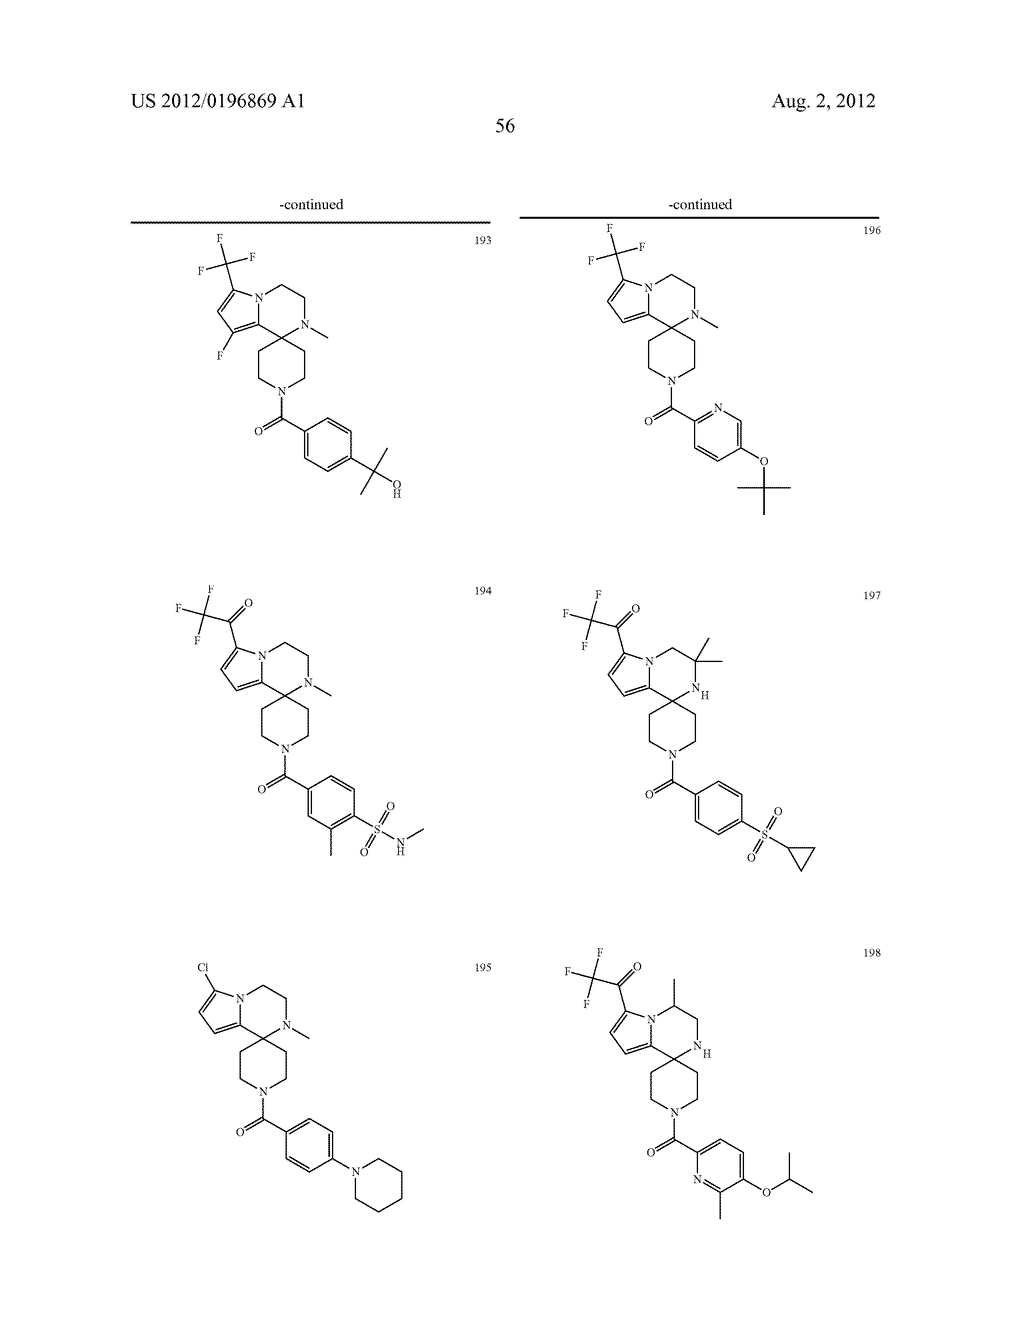 PYRROLOPYRAZINE-SPIROCYCLIC PIPERIDINE AMIDES AS MODULATORS OF ION     CHANNELS - diagram, schematic, and image 57